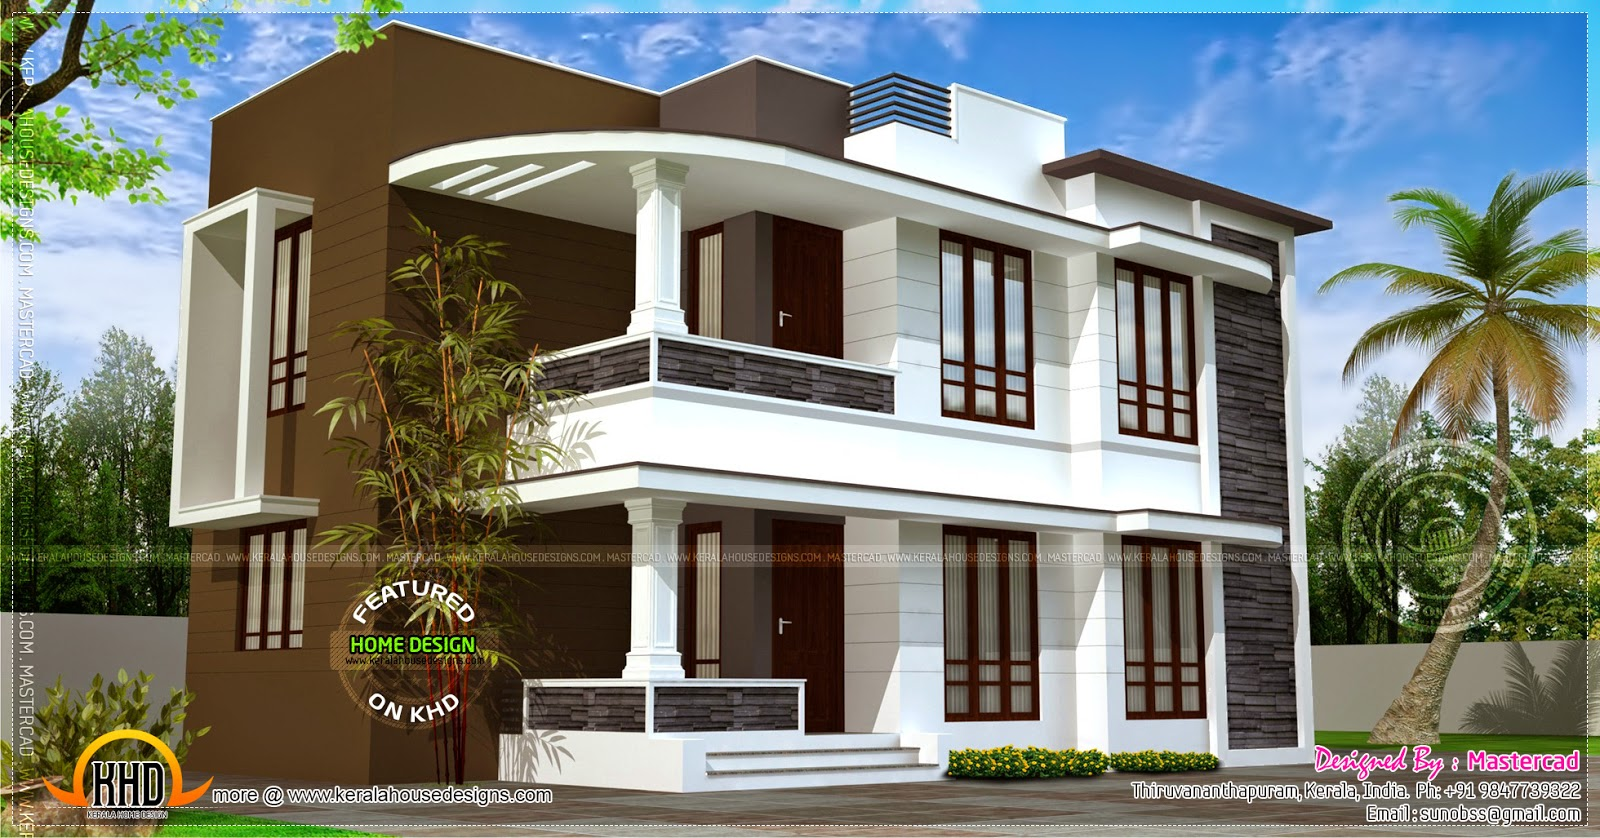 Modern 1500 house exterior kerala home design and for House plans with photos 1500 sq ft